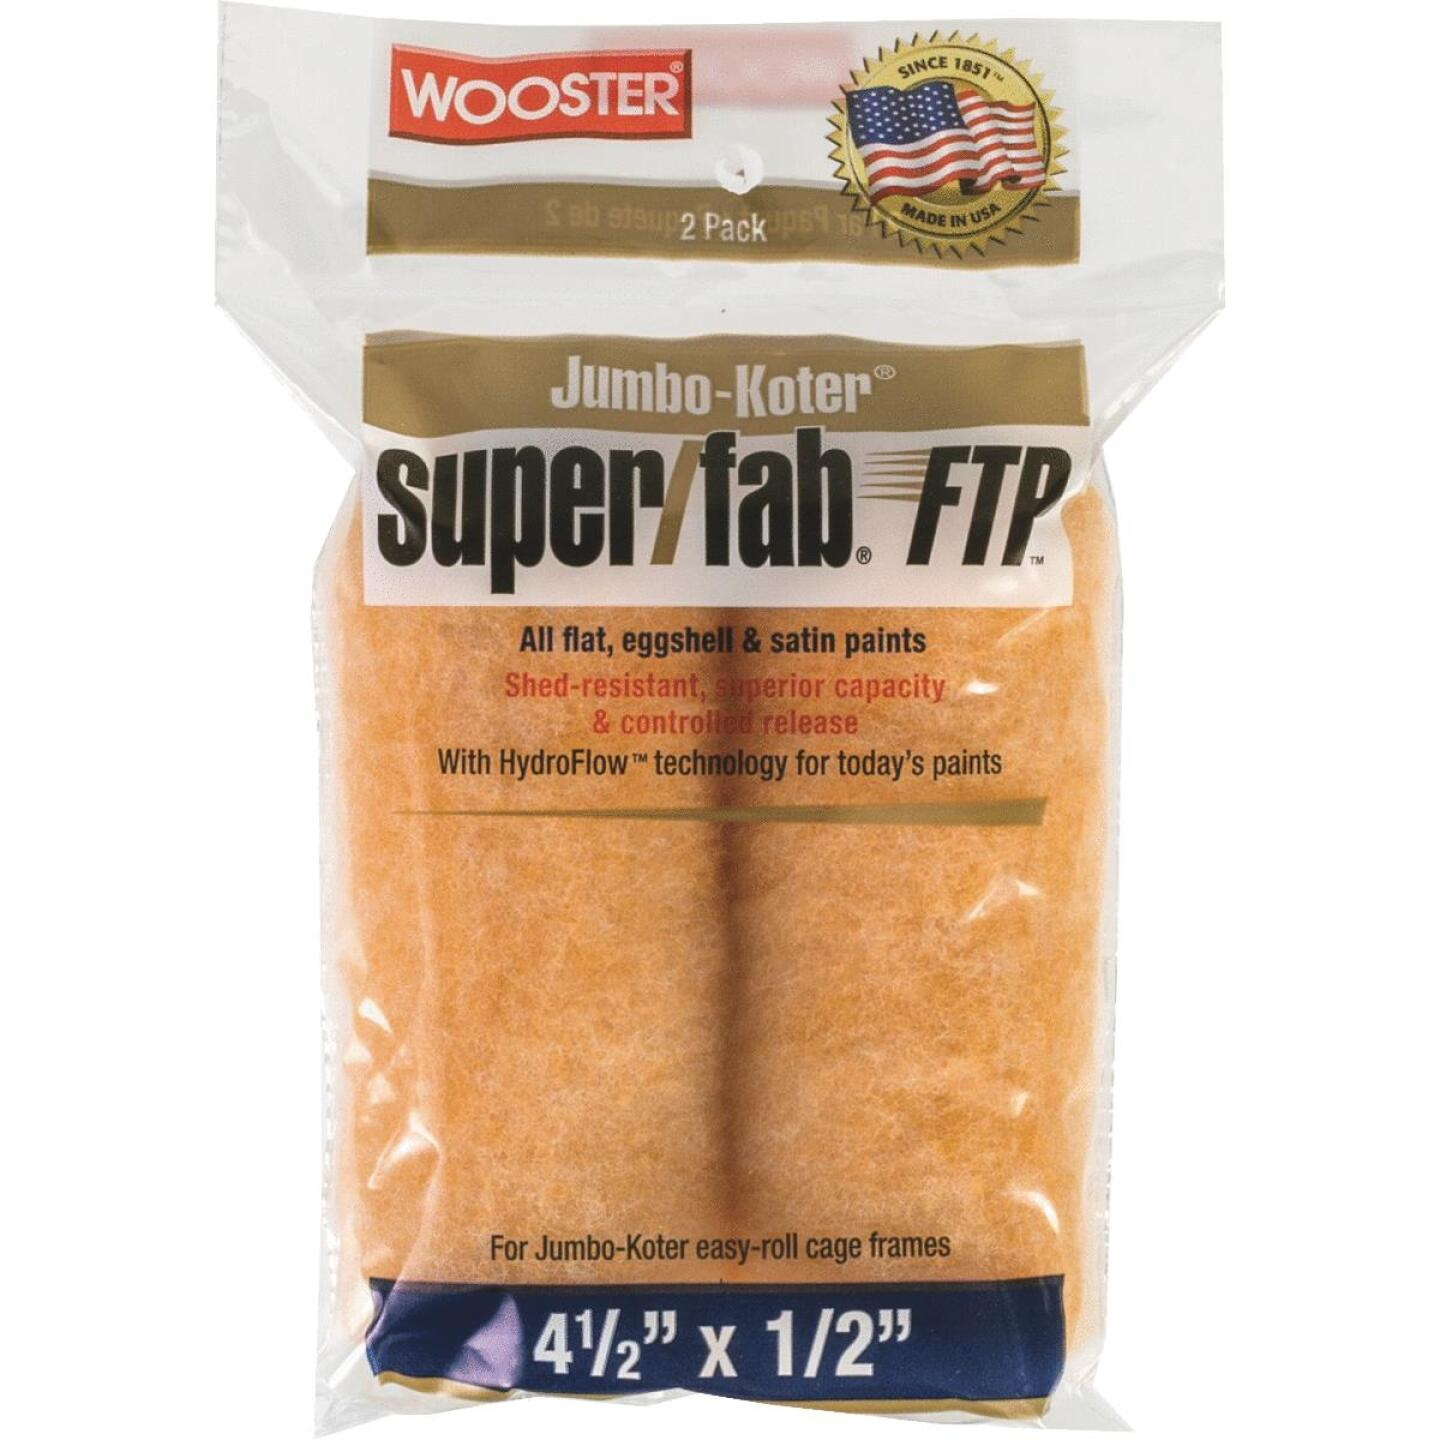 Wooster Jumbo-Koter Super/Fab FTP 4-1/2 In. x 1/2 In. Mini Knit Fabric Roller Cover (2-Pack) Image 1